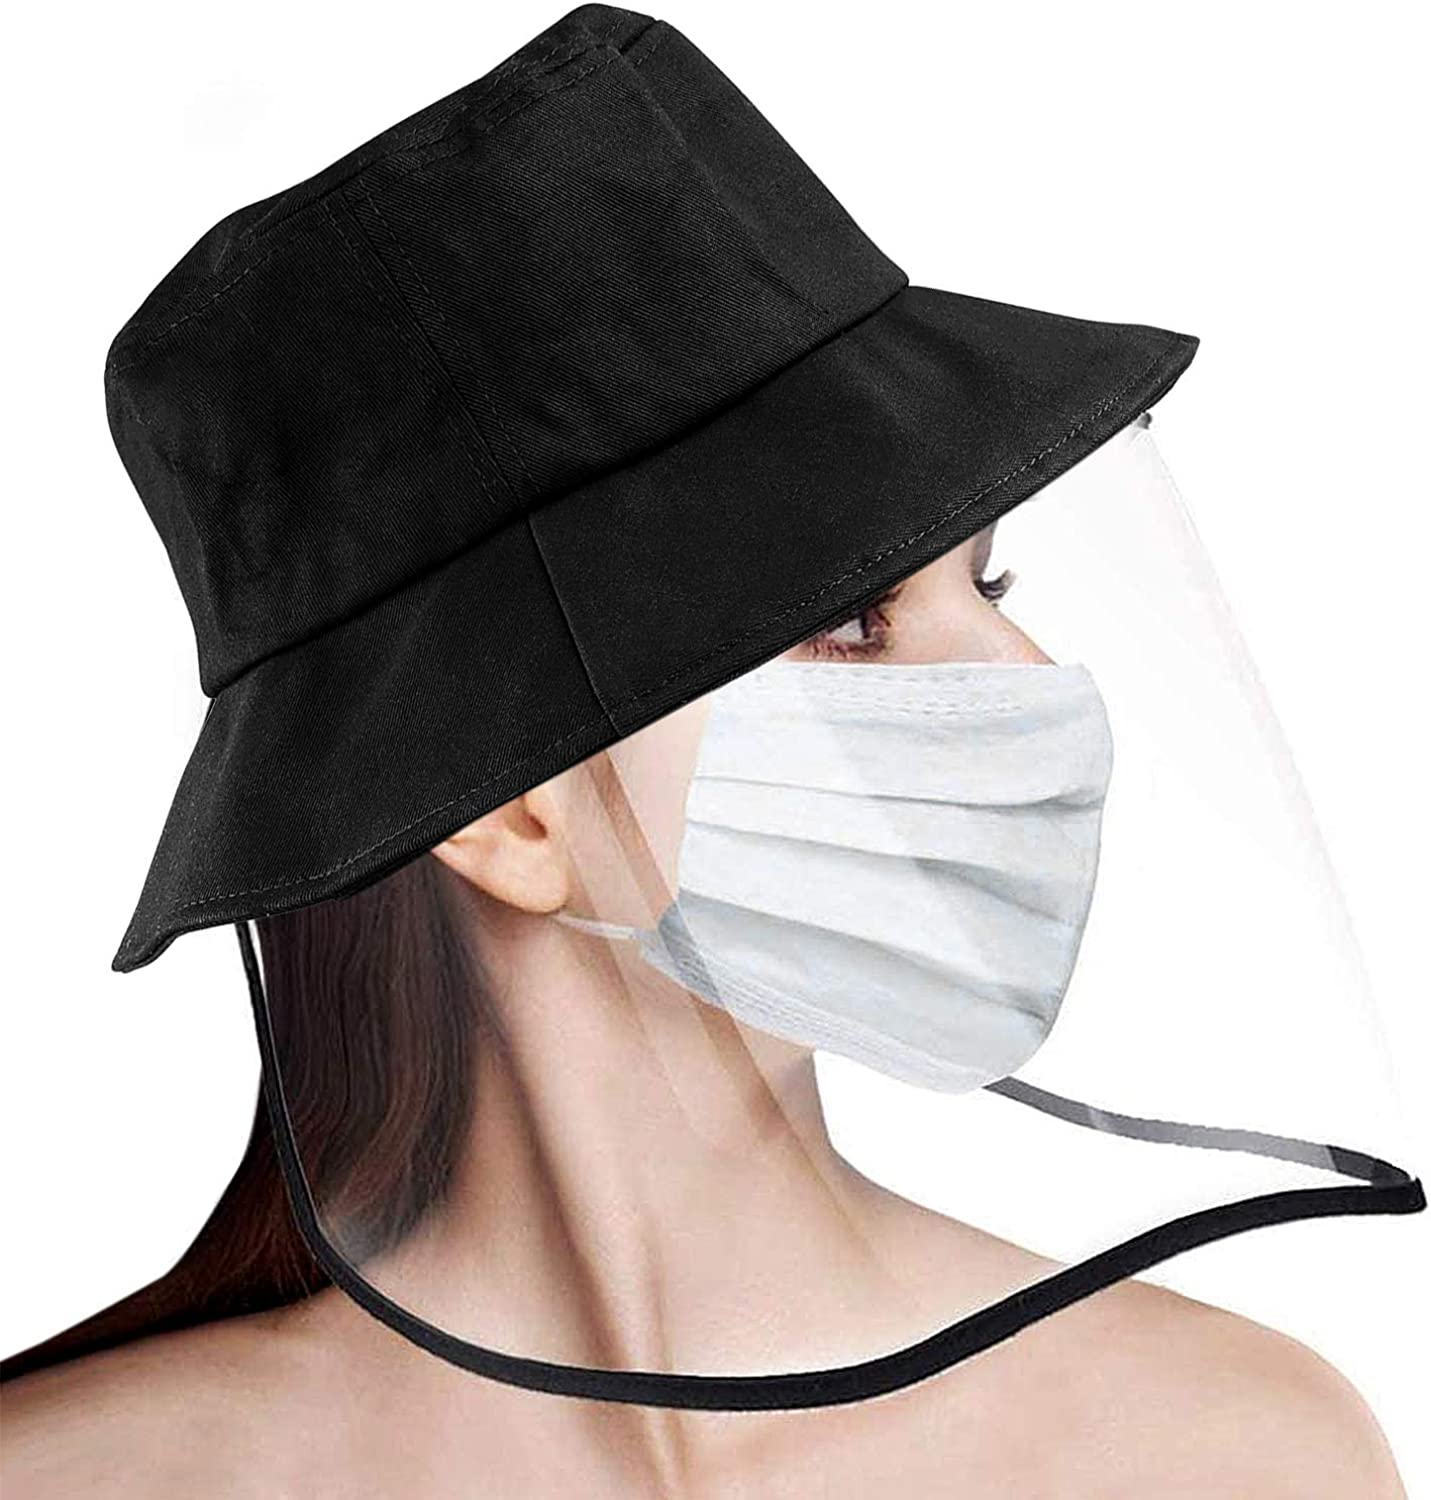 Fengxing Safety Hat with Face Shield Anti-Fog Dustproof Protection Face Eye Bucket Hat